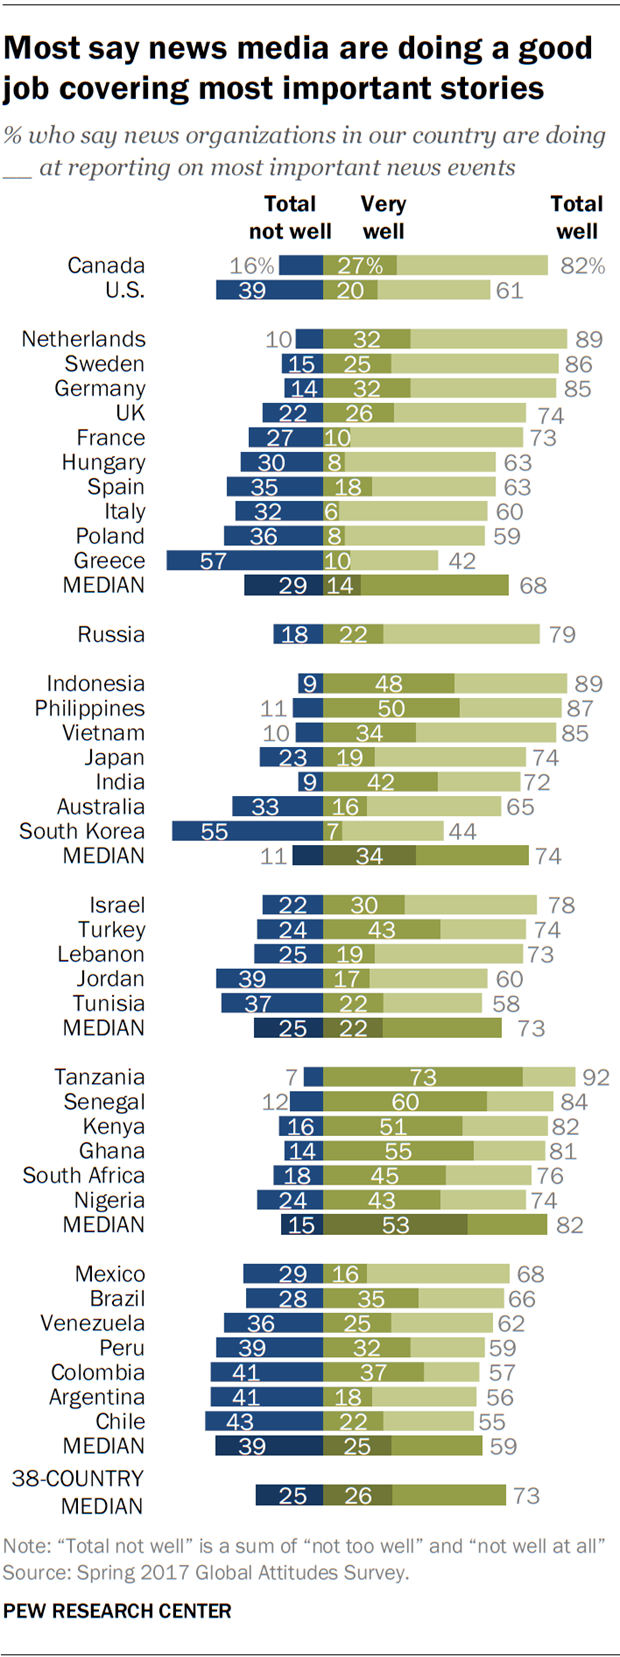 Most say news media are doing a good job covering most important stories